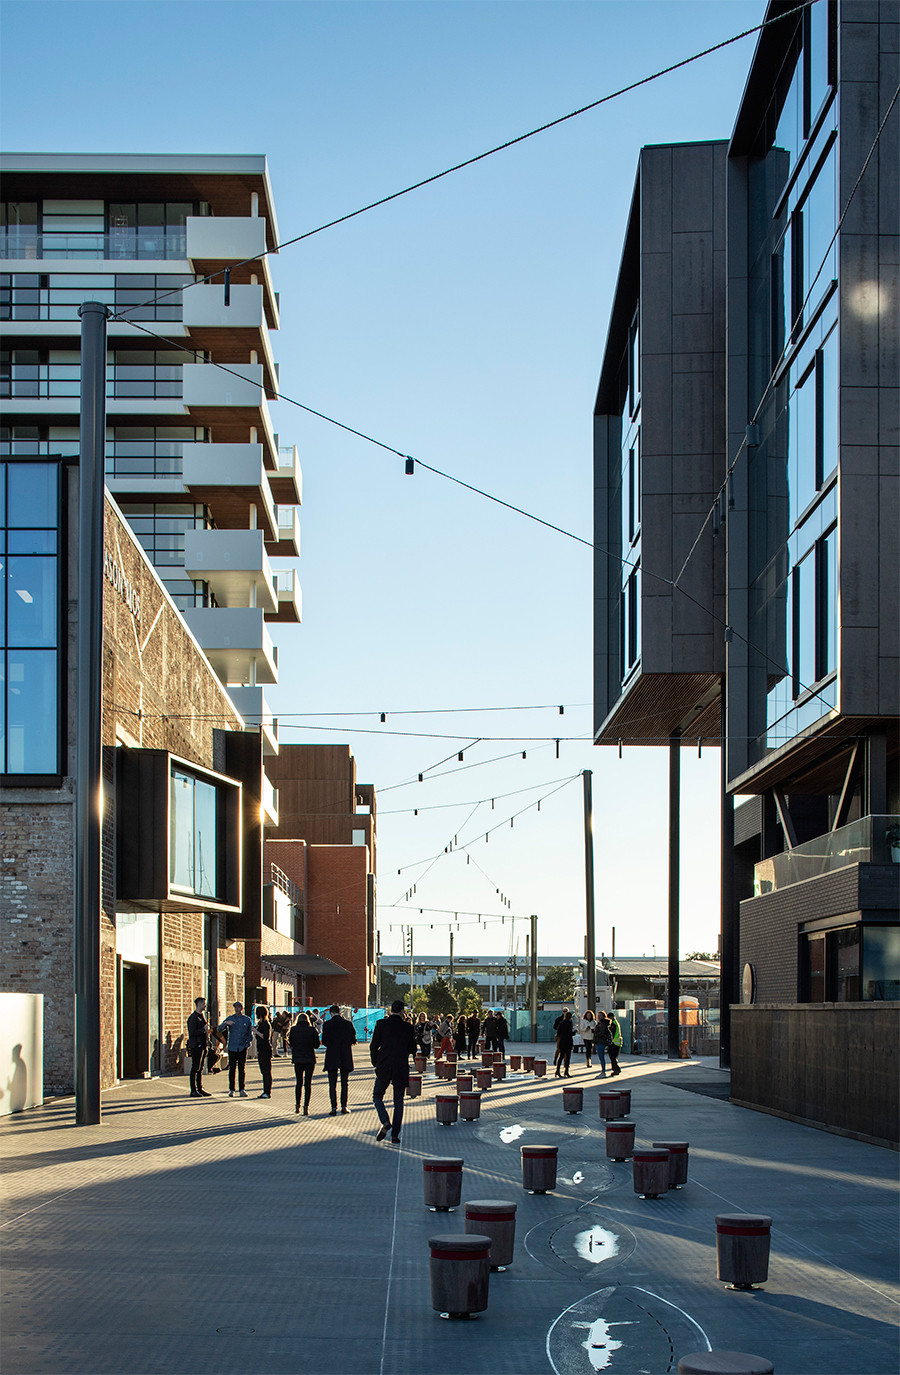 Wynyard Quarter is a major innovation hub in Auckland by Warren & Mahoney. Photo by Simon Dewitt.